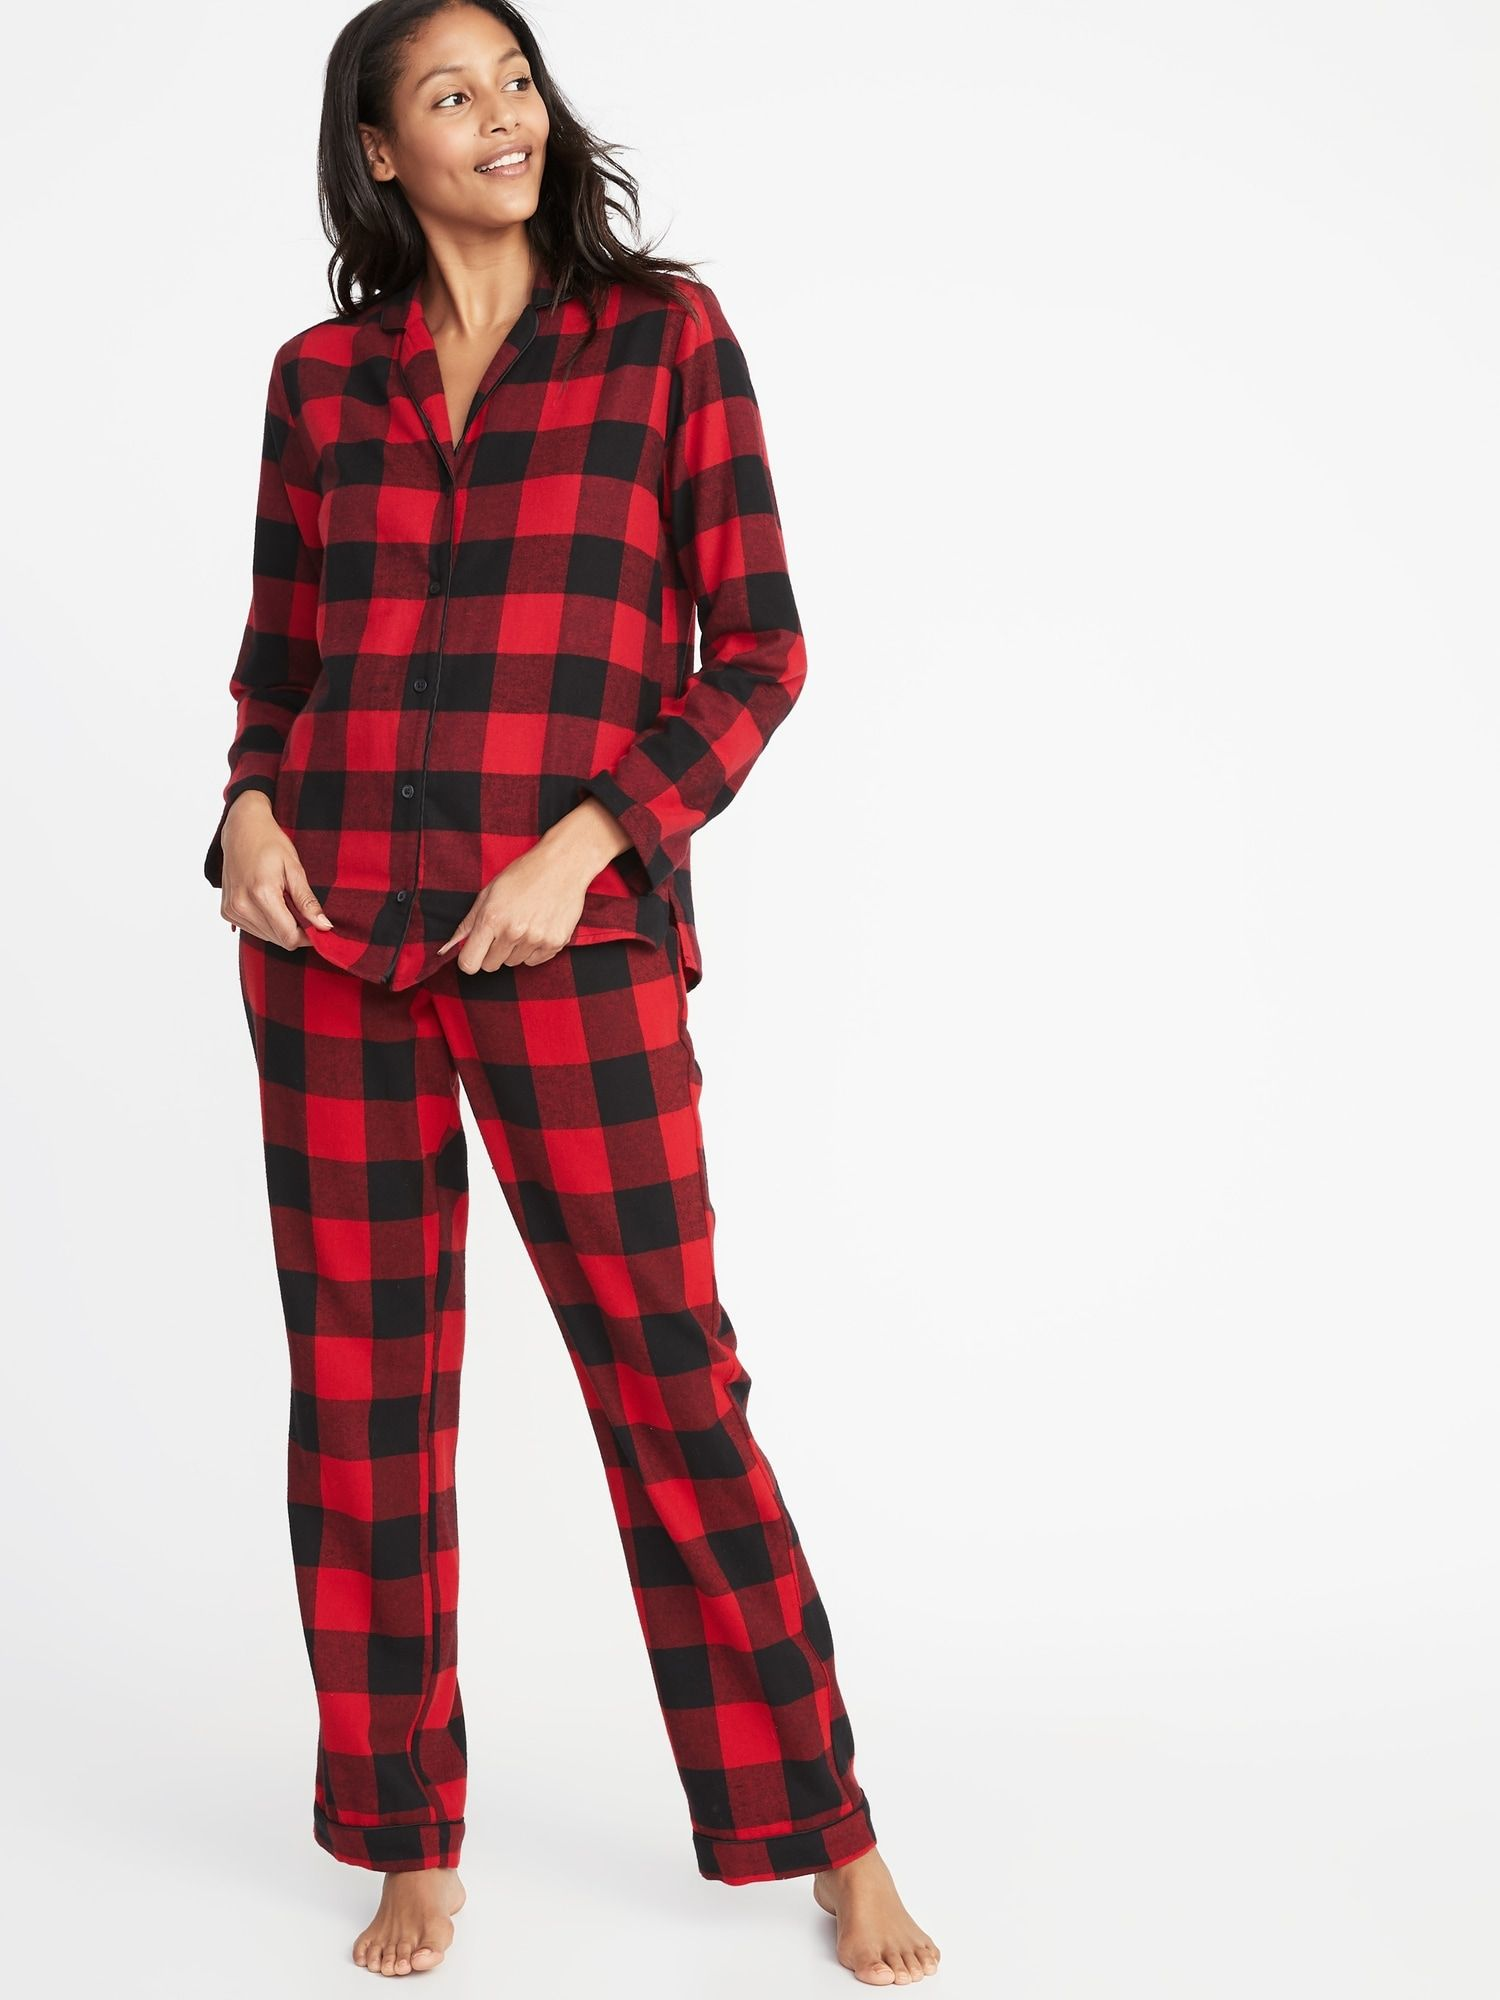 Patterned Flannel Pajama Set for Women Wish List